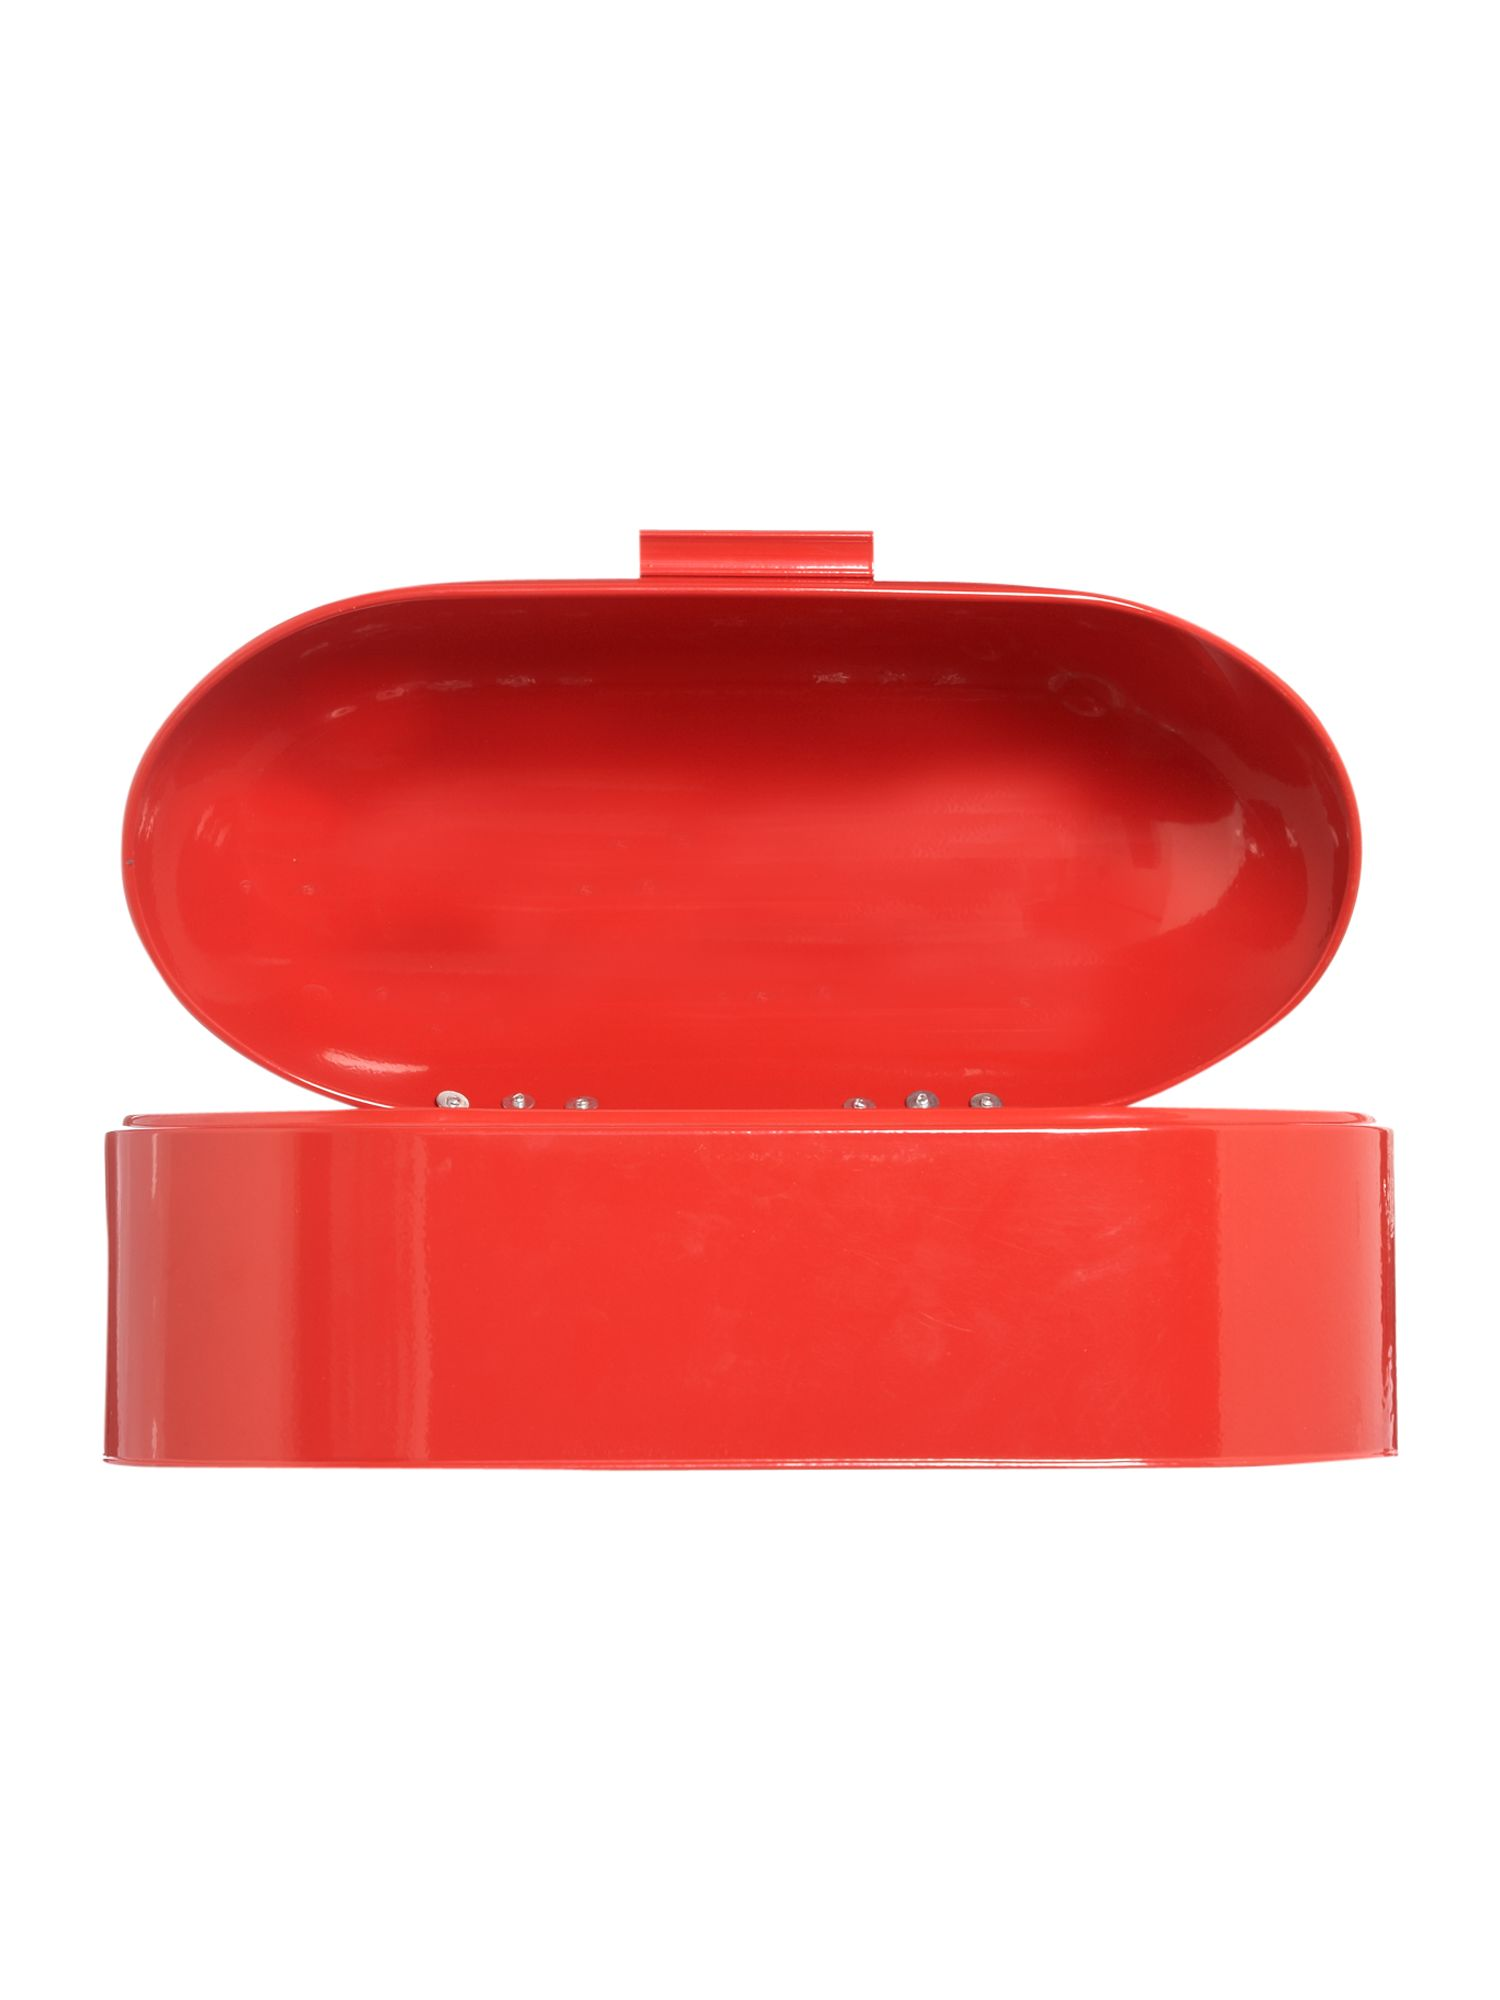 Bright red bread bin